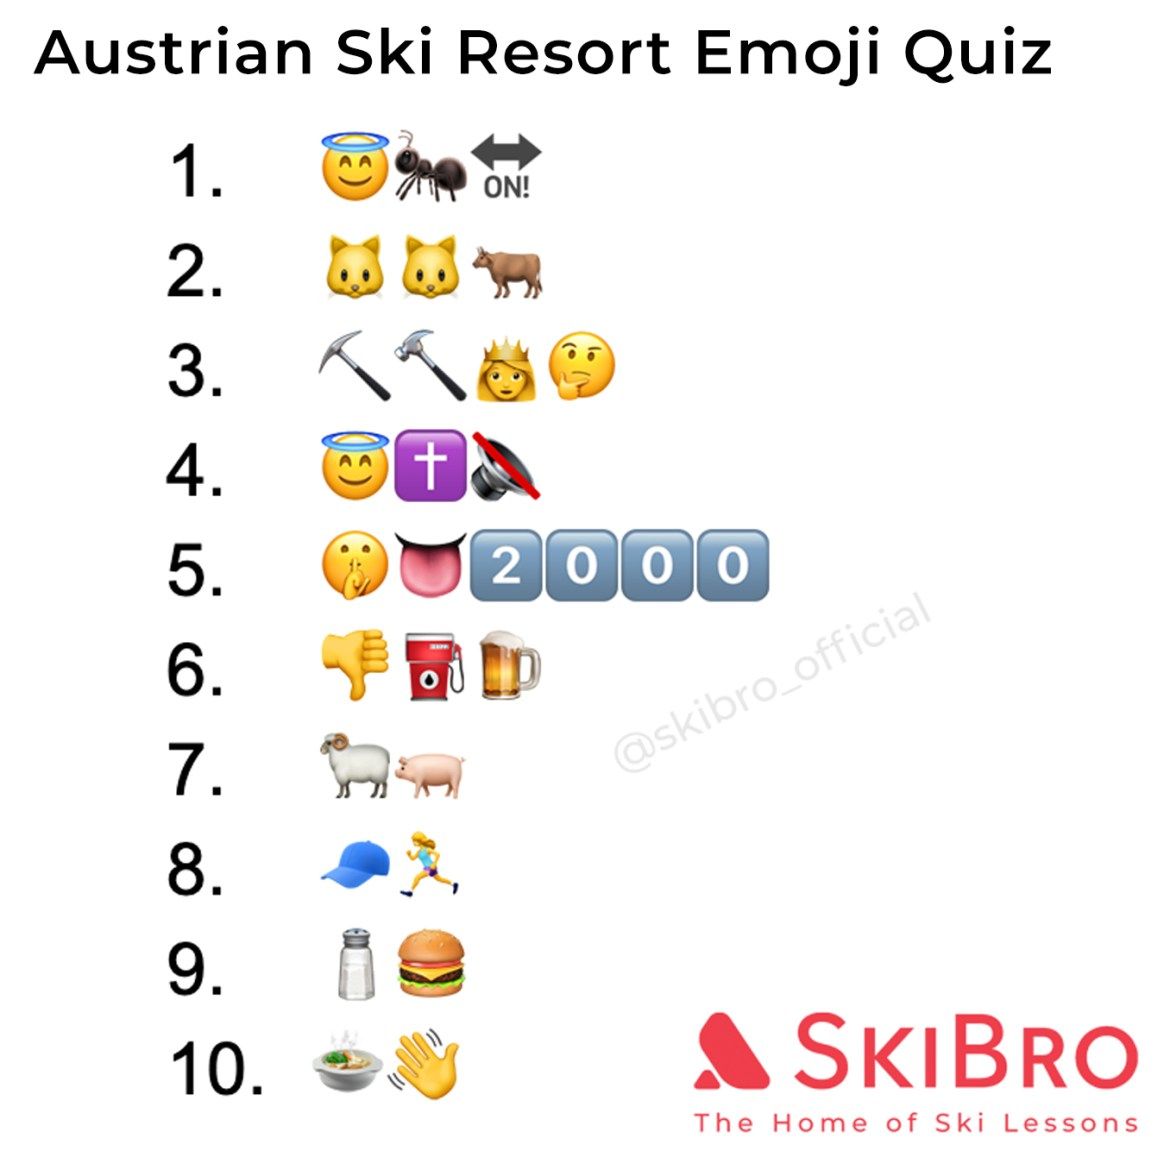 emoji quiz of 10 popular austrian ski resorts